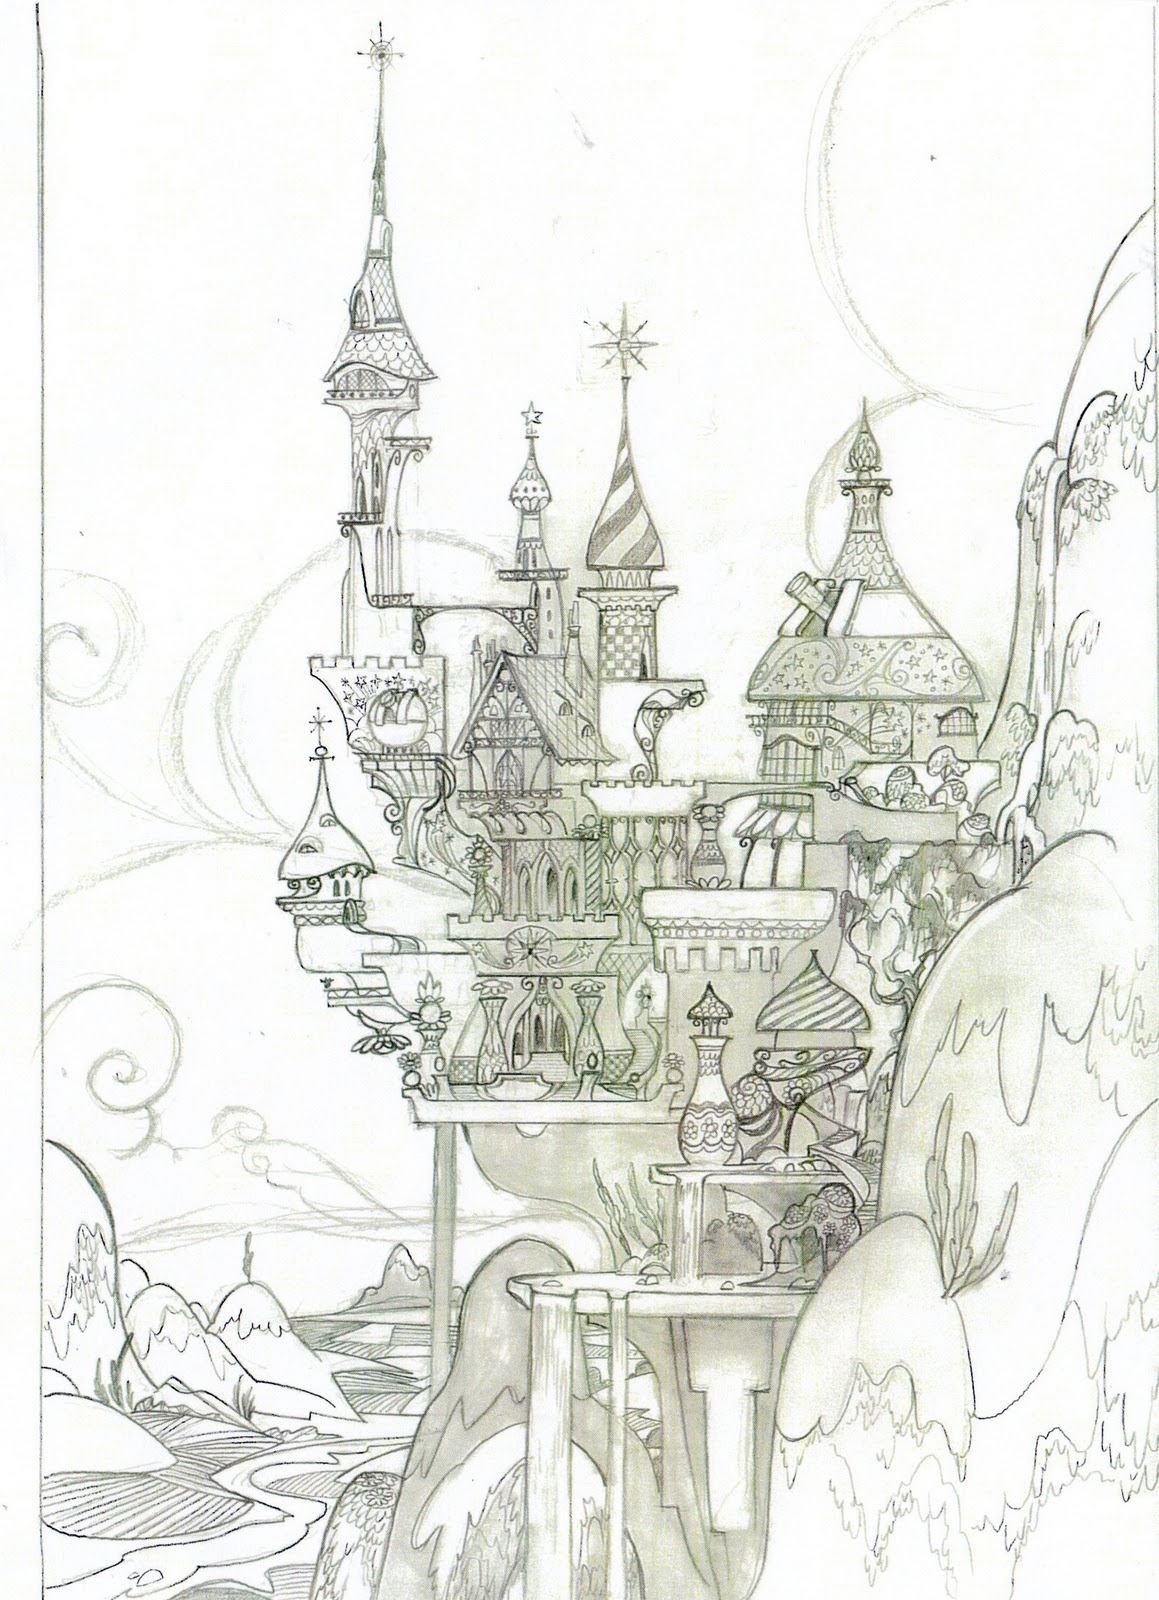 Drawn castle background #1